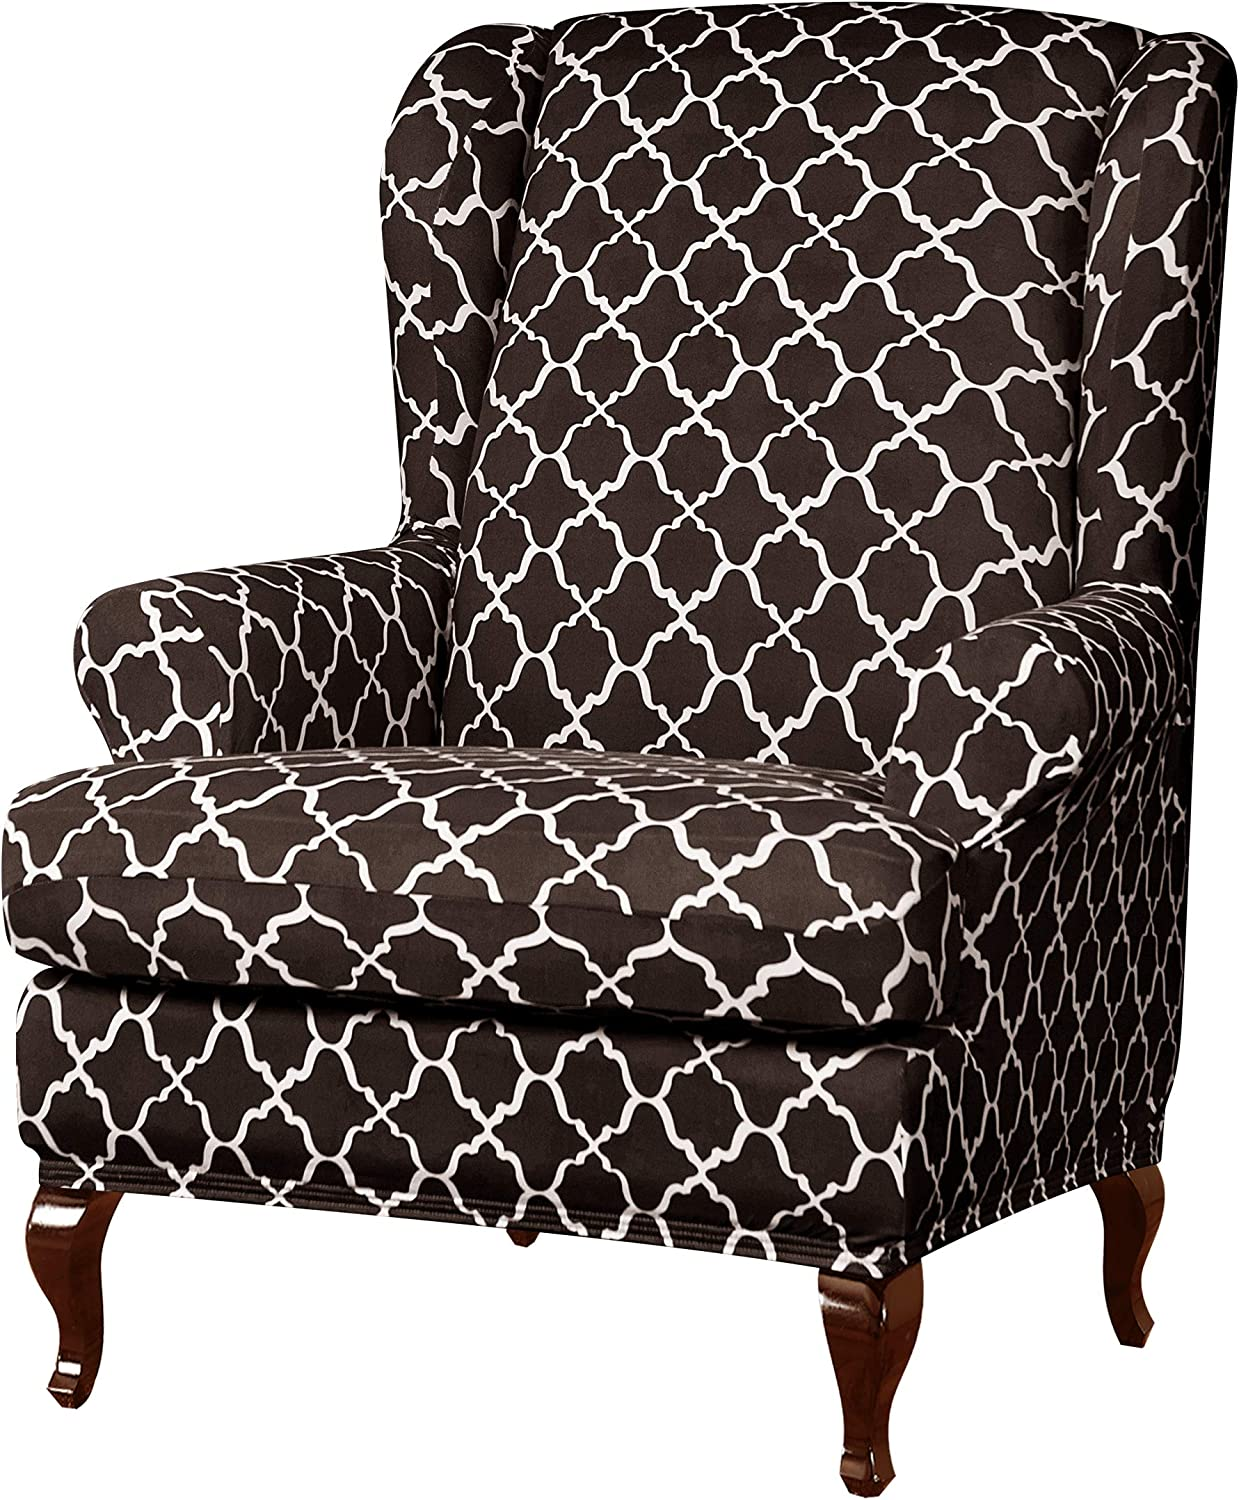 subrtex Wingback Chair Slipcovers Wing Chair Armchair Covers Detachable Spandex Printed Sofa Covers Furniture Protector (Coffee)